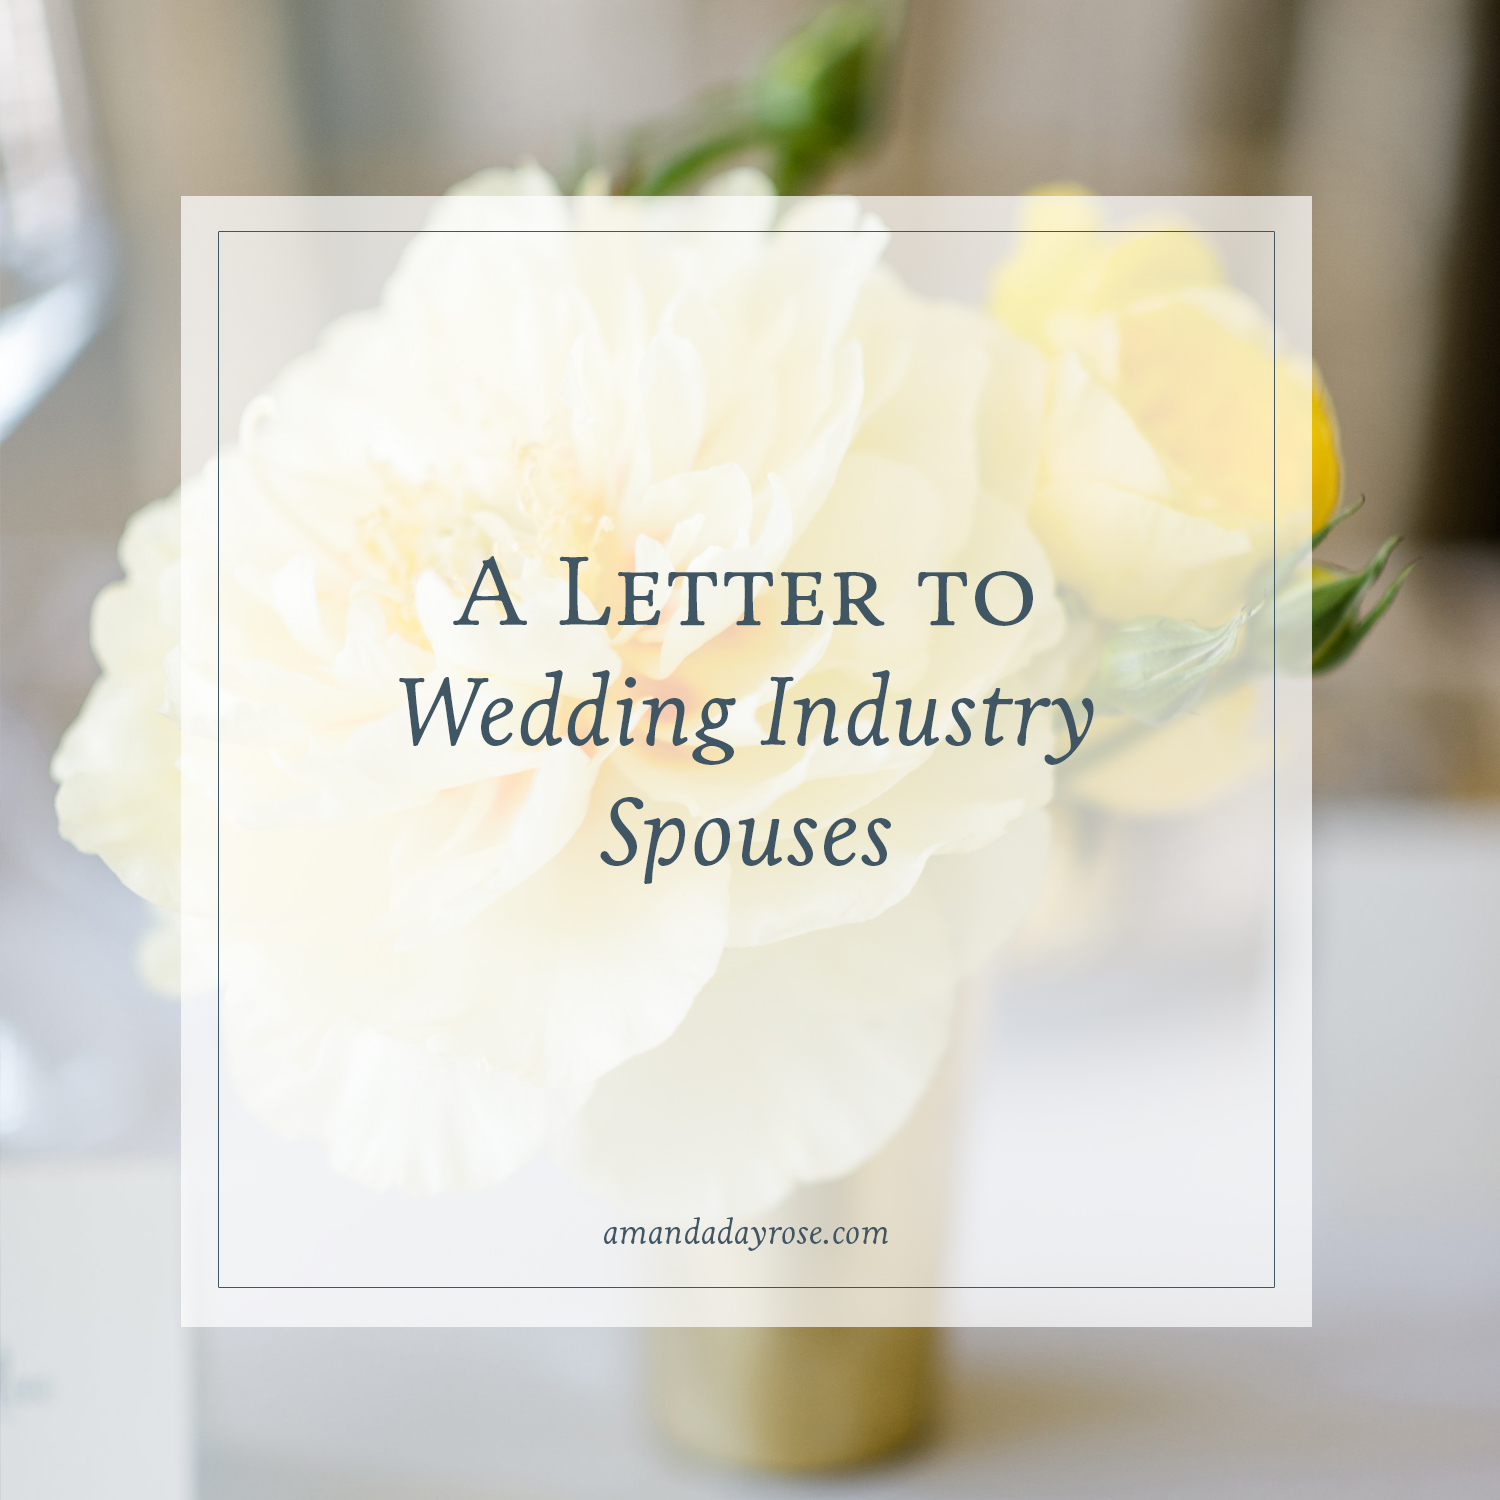 A Letter to Wedding Industry Spouses